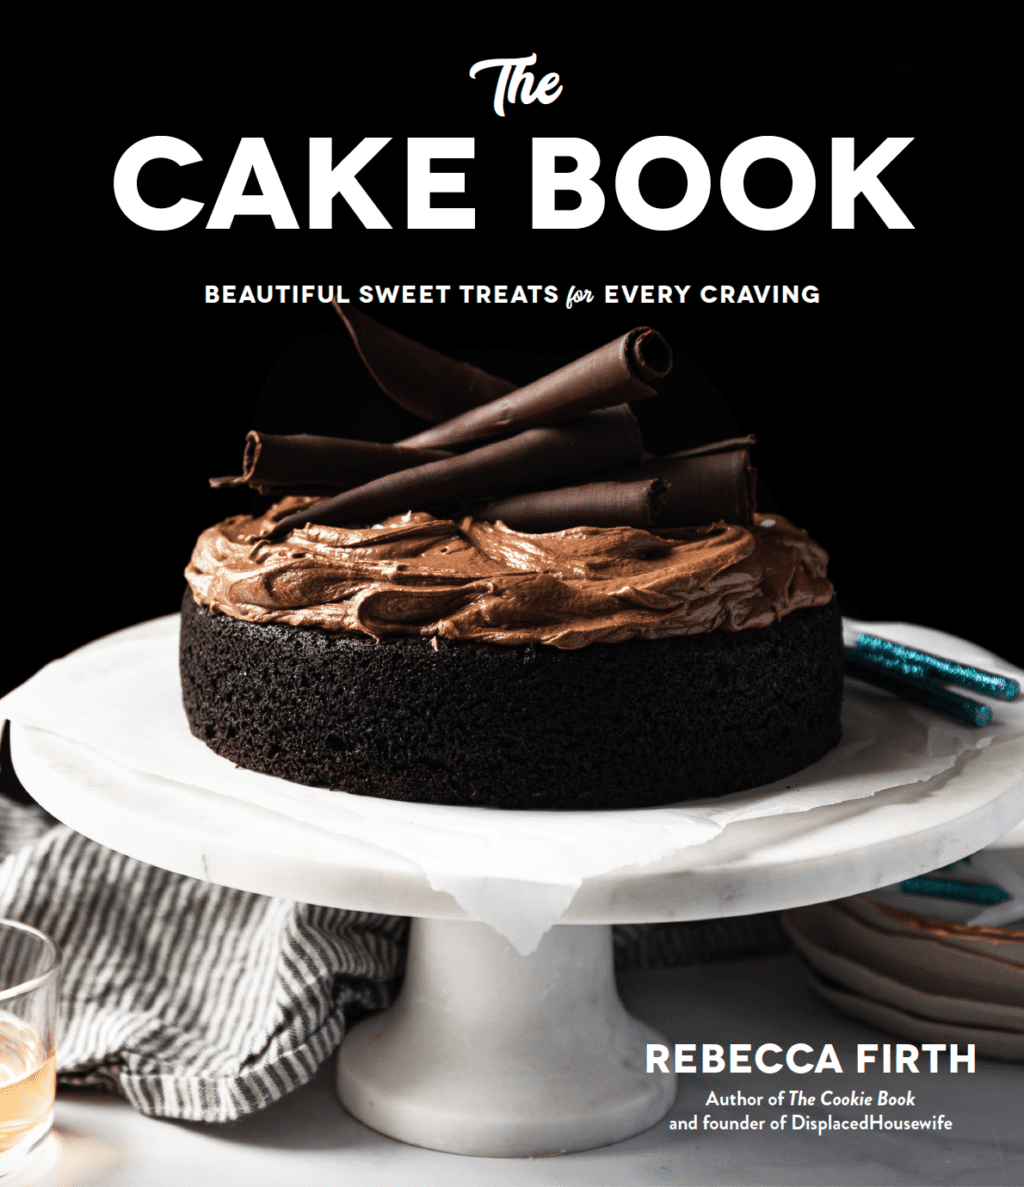 The Cake Book cover: Chocolate cake on a white cake stand on a black background